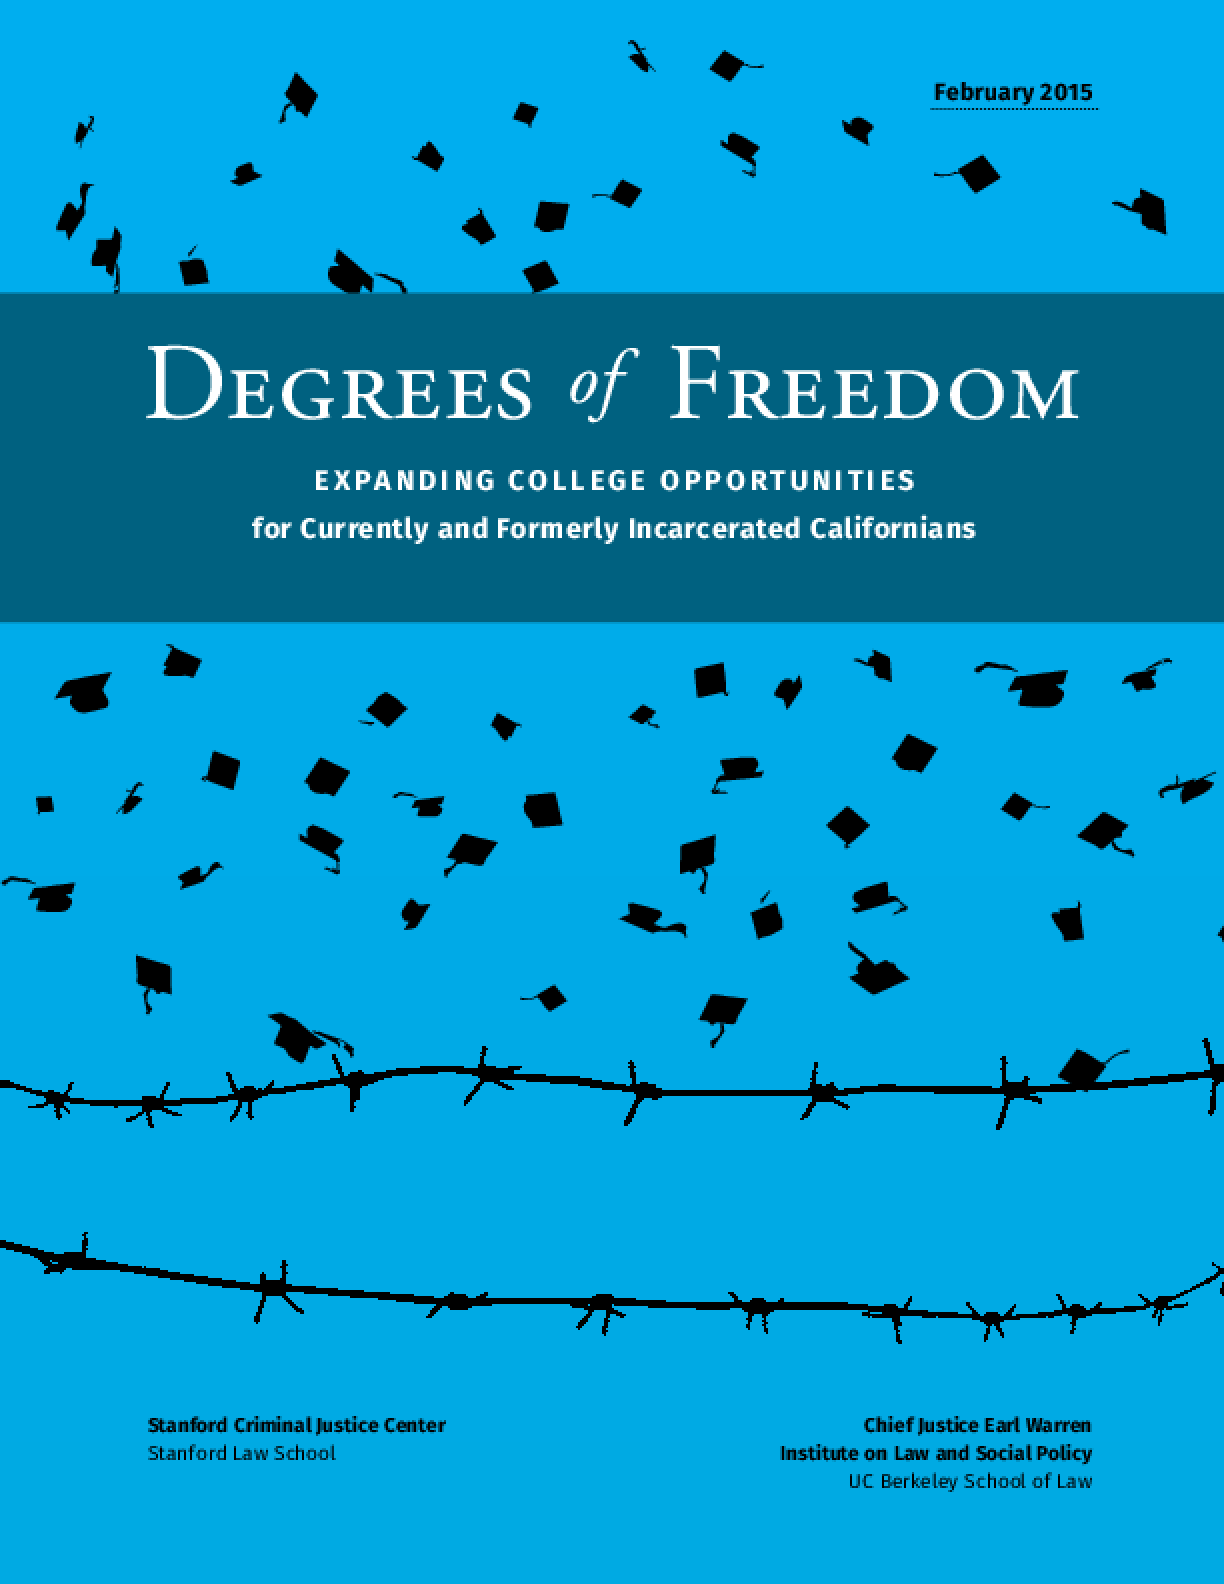 Degrees of Freedom: Expanding College Opportunities - for Currently and Formerly Incarcerated Californians